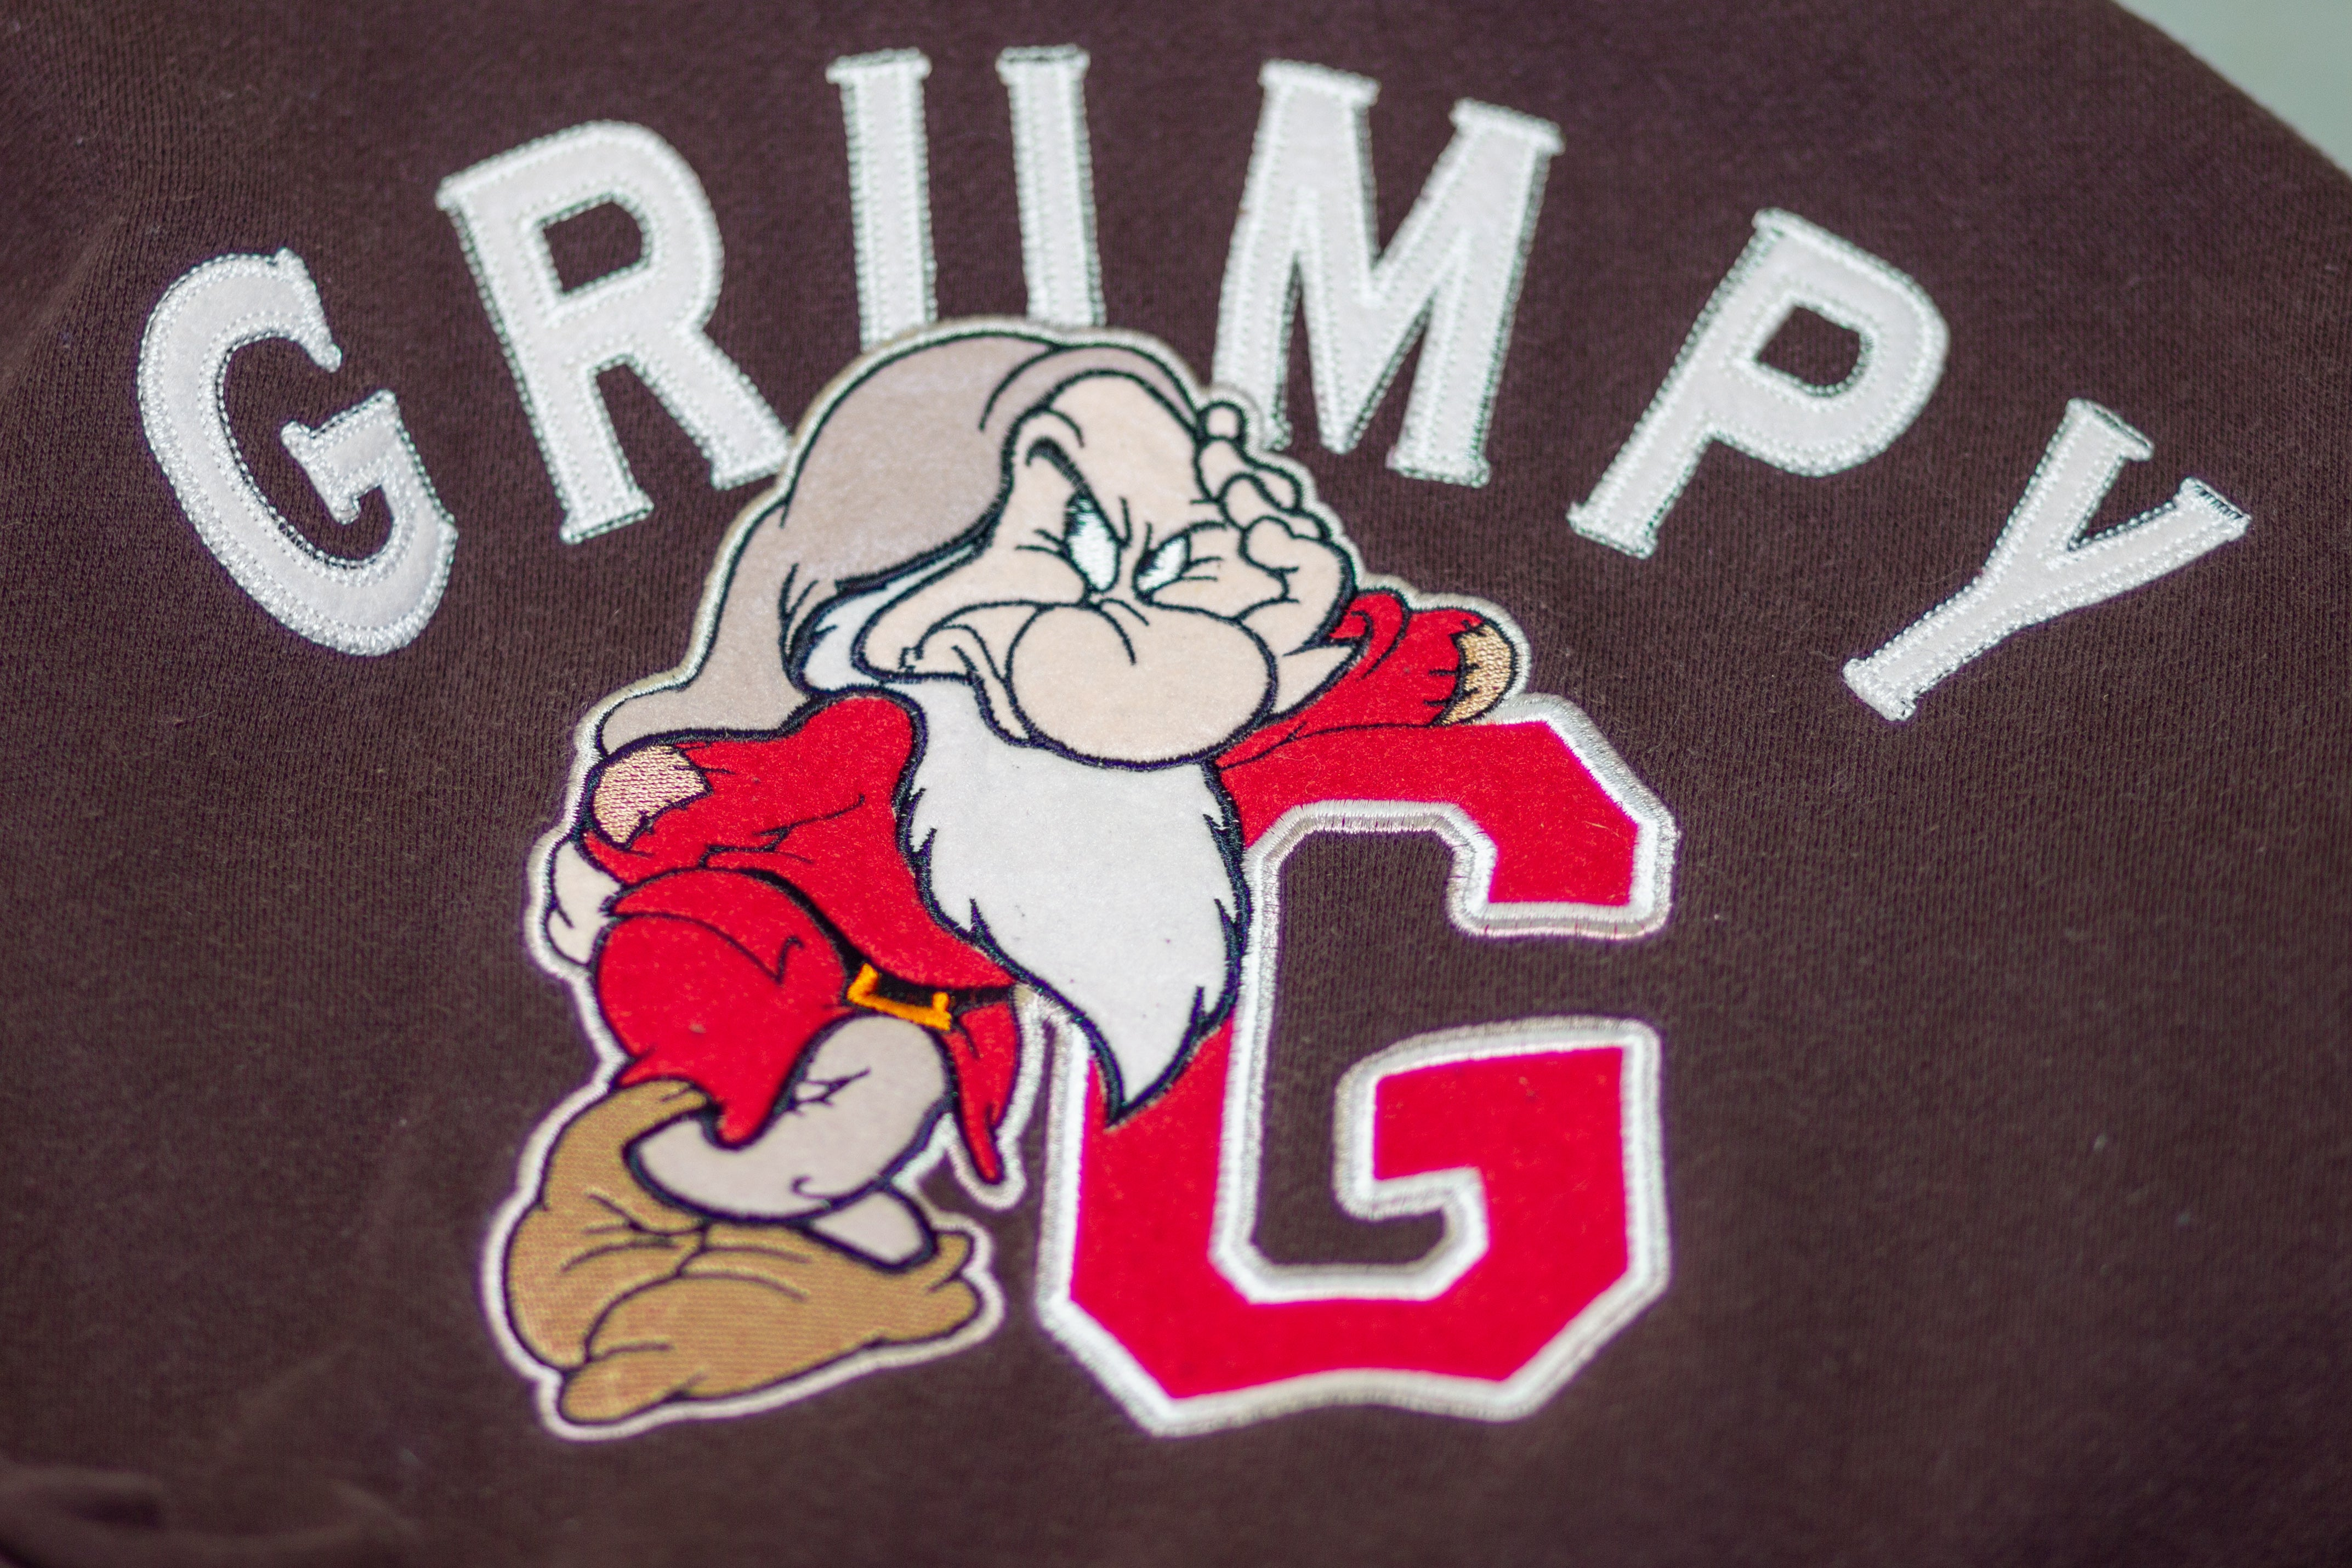 Disney Grumpy Hoodie Size: Medium 80% Cotton 20% Polyester Made in Thailand God Pre-Owned Condition - Vintage Heaven Shop